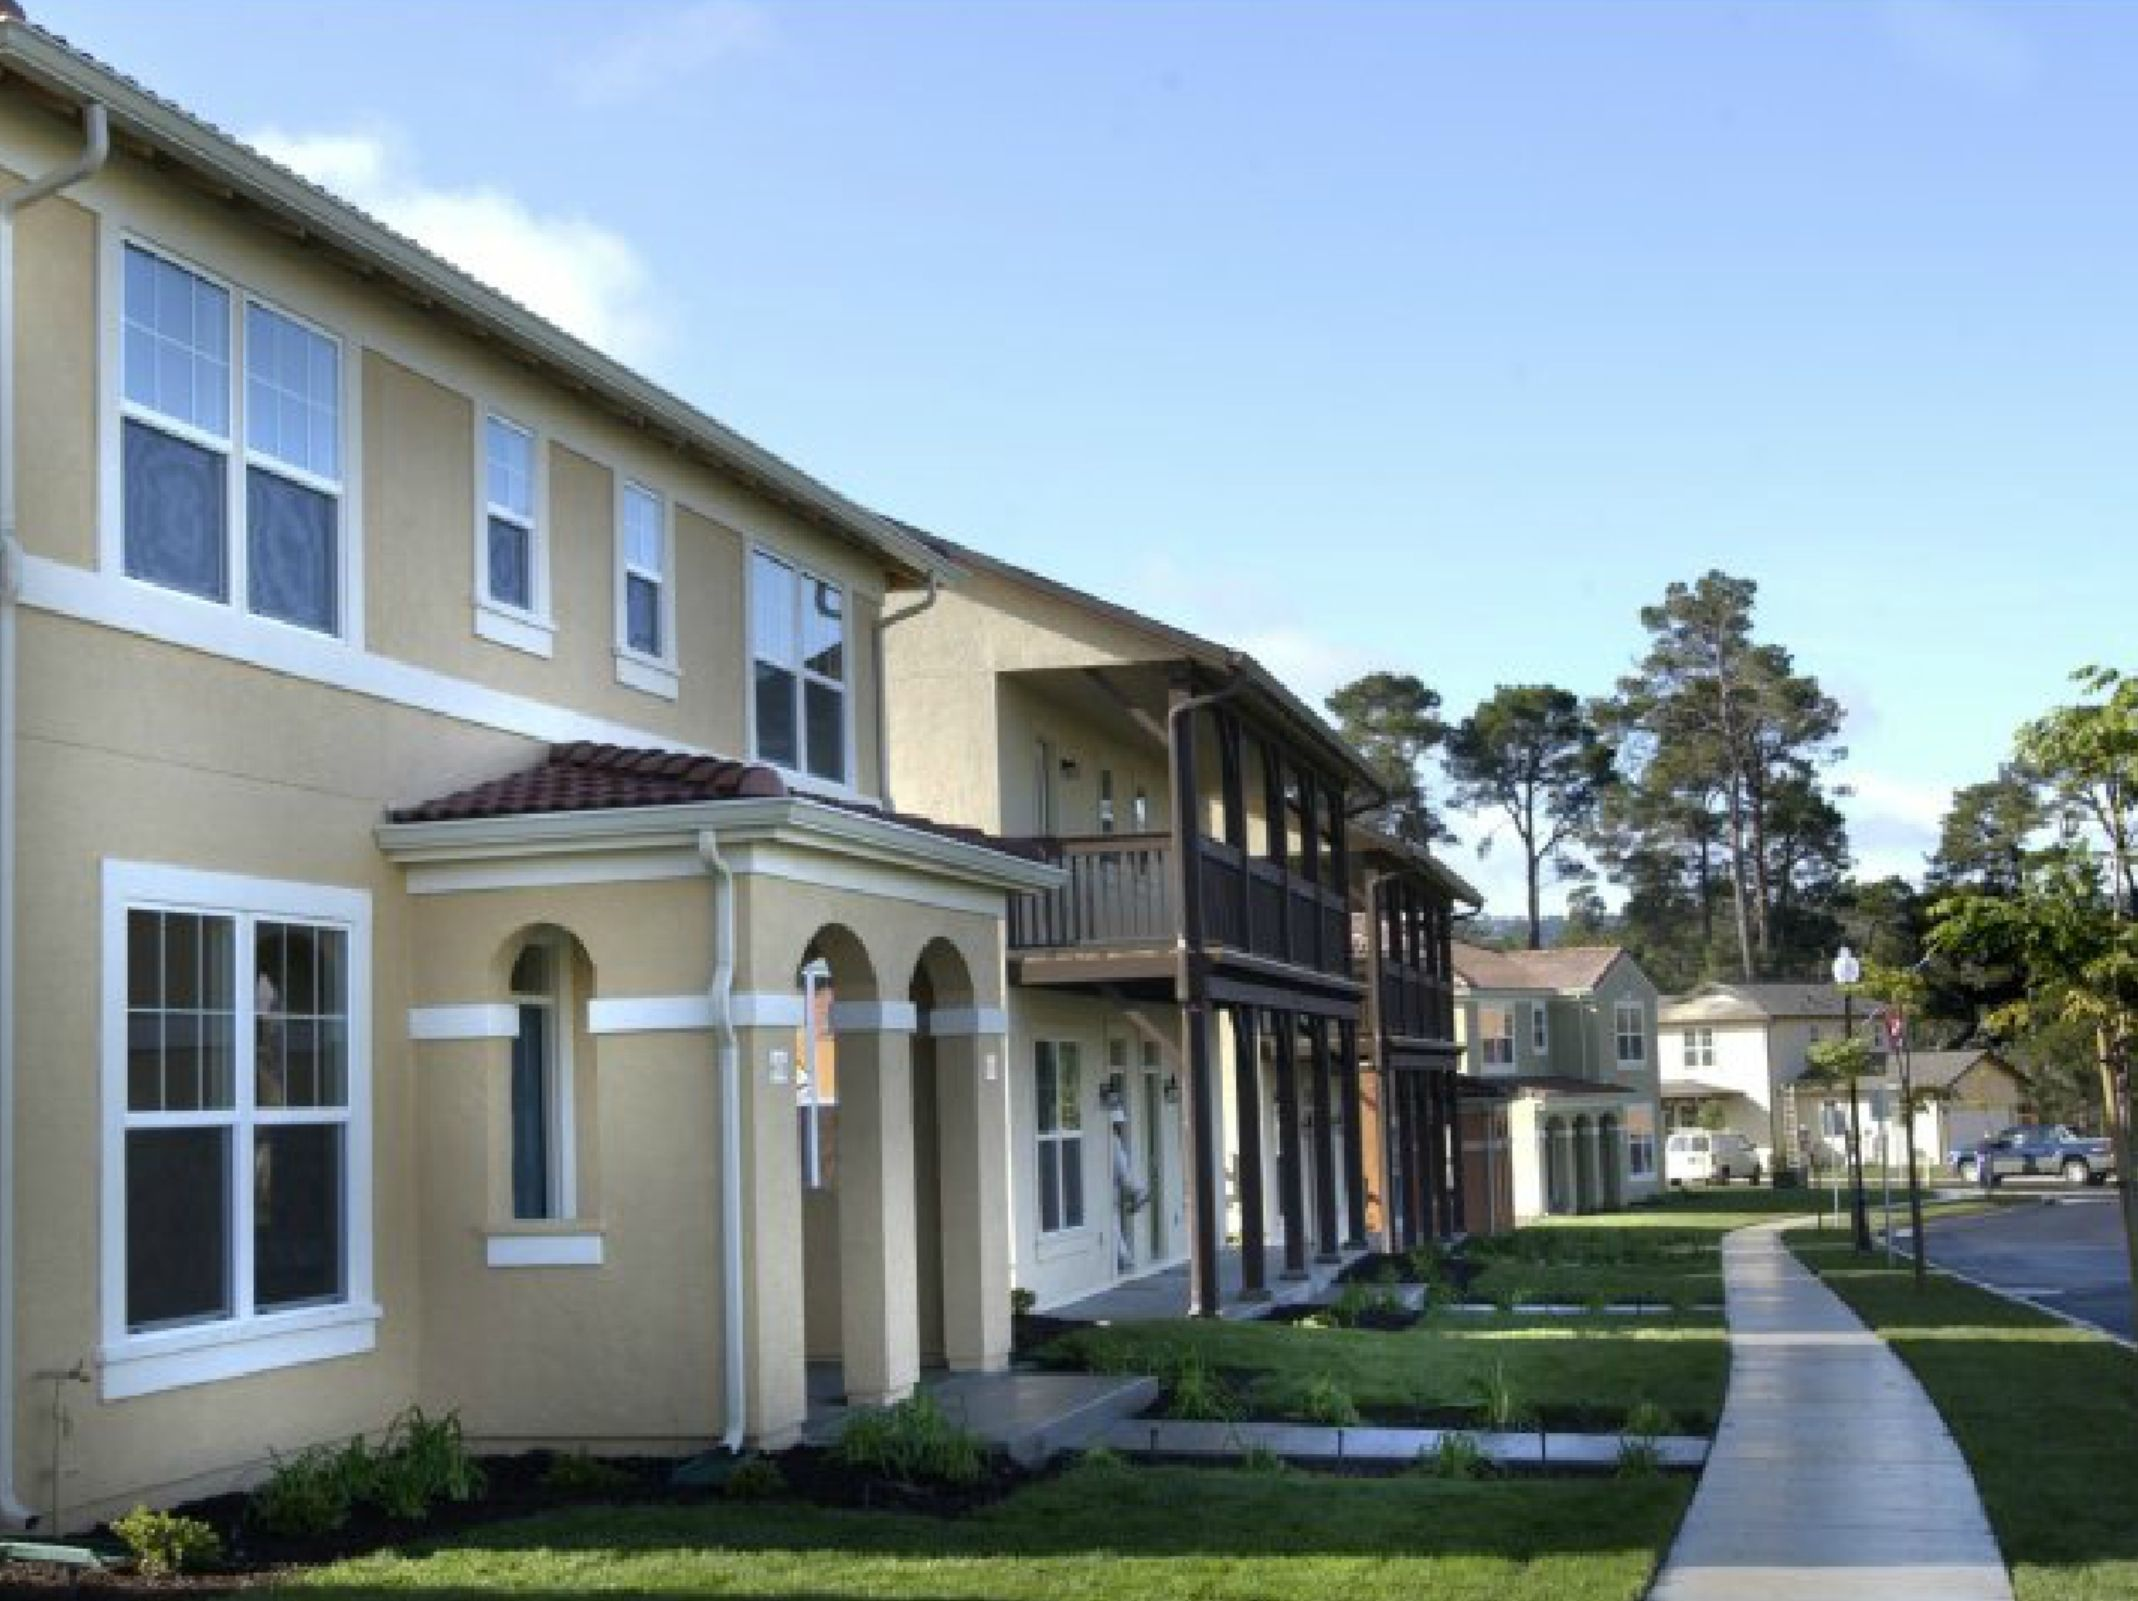 NSA Monterey U2013 Fitch Park Neighborhood: 3 4 Bedroom Homes Designated For E5